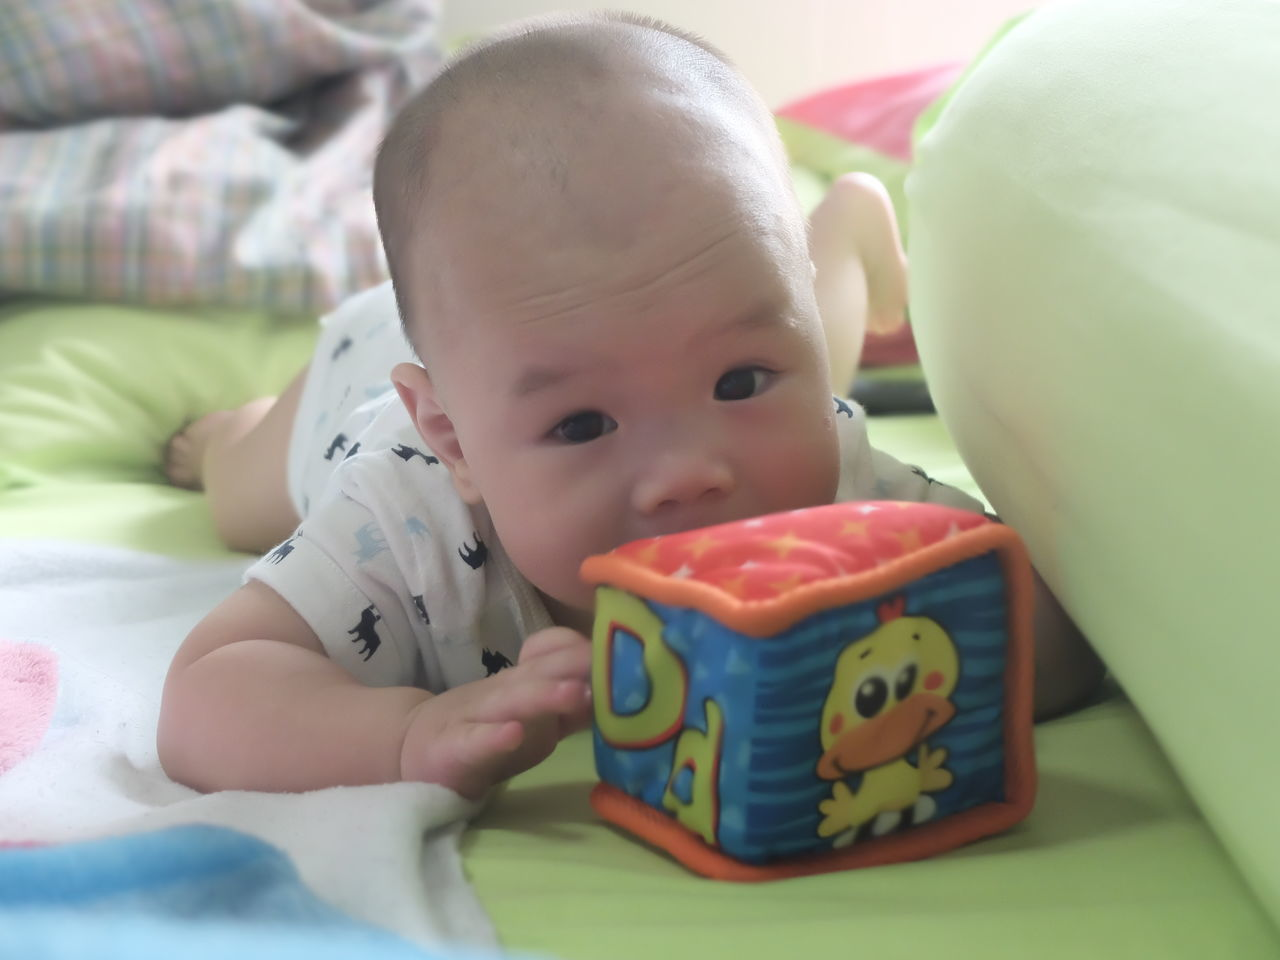 Babies Only Baby Babyhood Bed Bedroom Childhood Close-up Cute Day Home Interior Indoors  Innocence One Person Pacifier Real People Toy